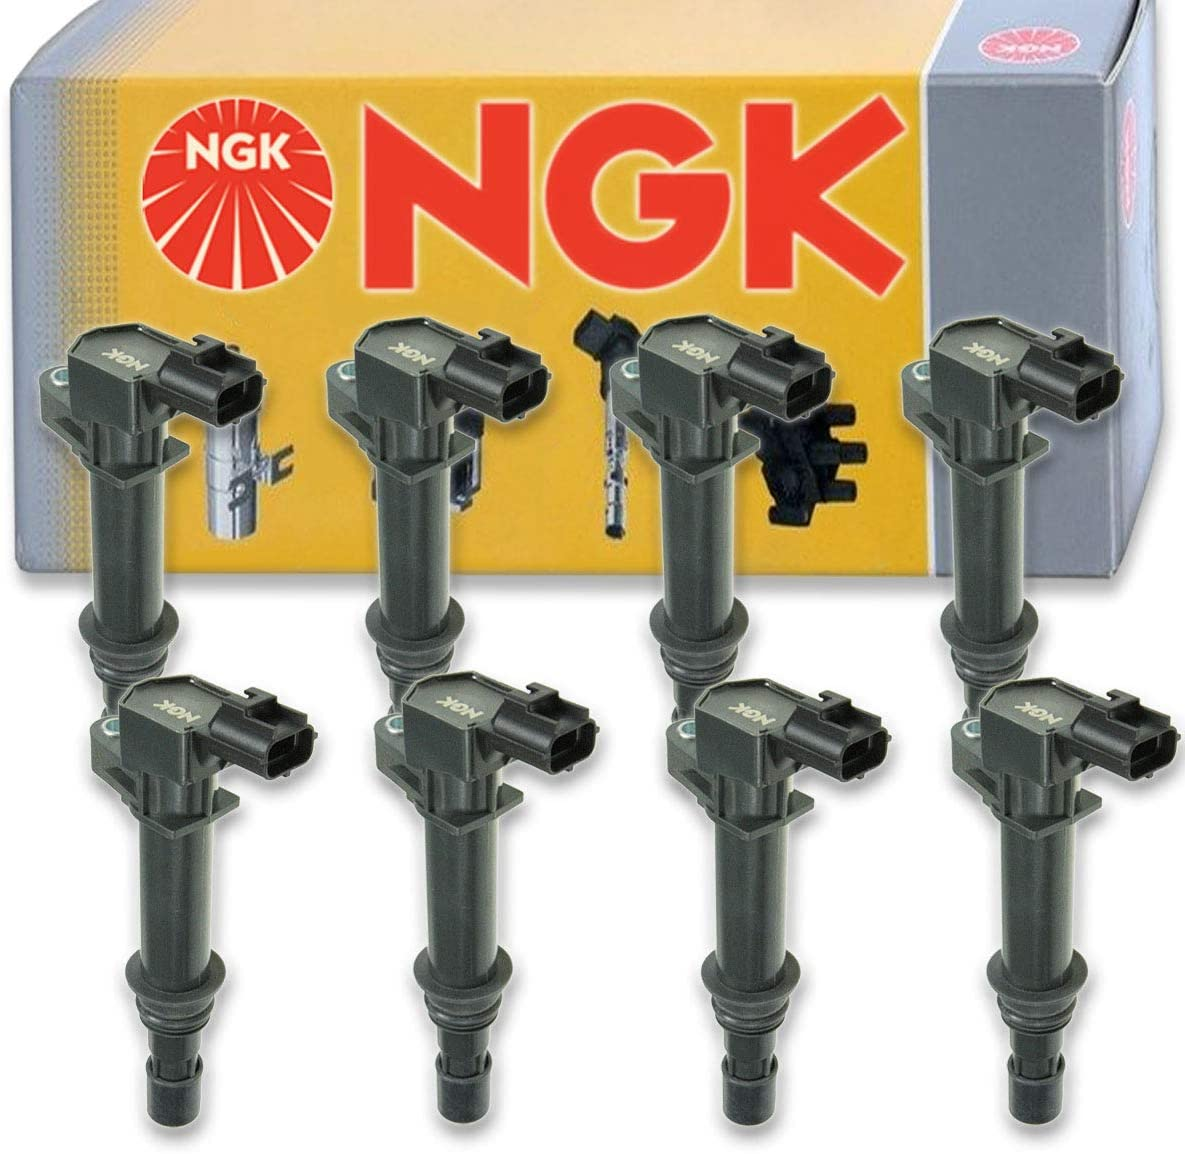 8 pcs NGK Ignition Coil for 2002-2007 Dodge Ram 1500 4.7L V8 - Spark Plug Tune Up Kit